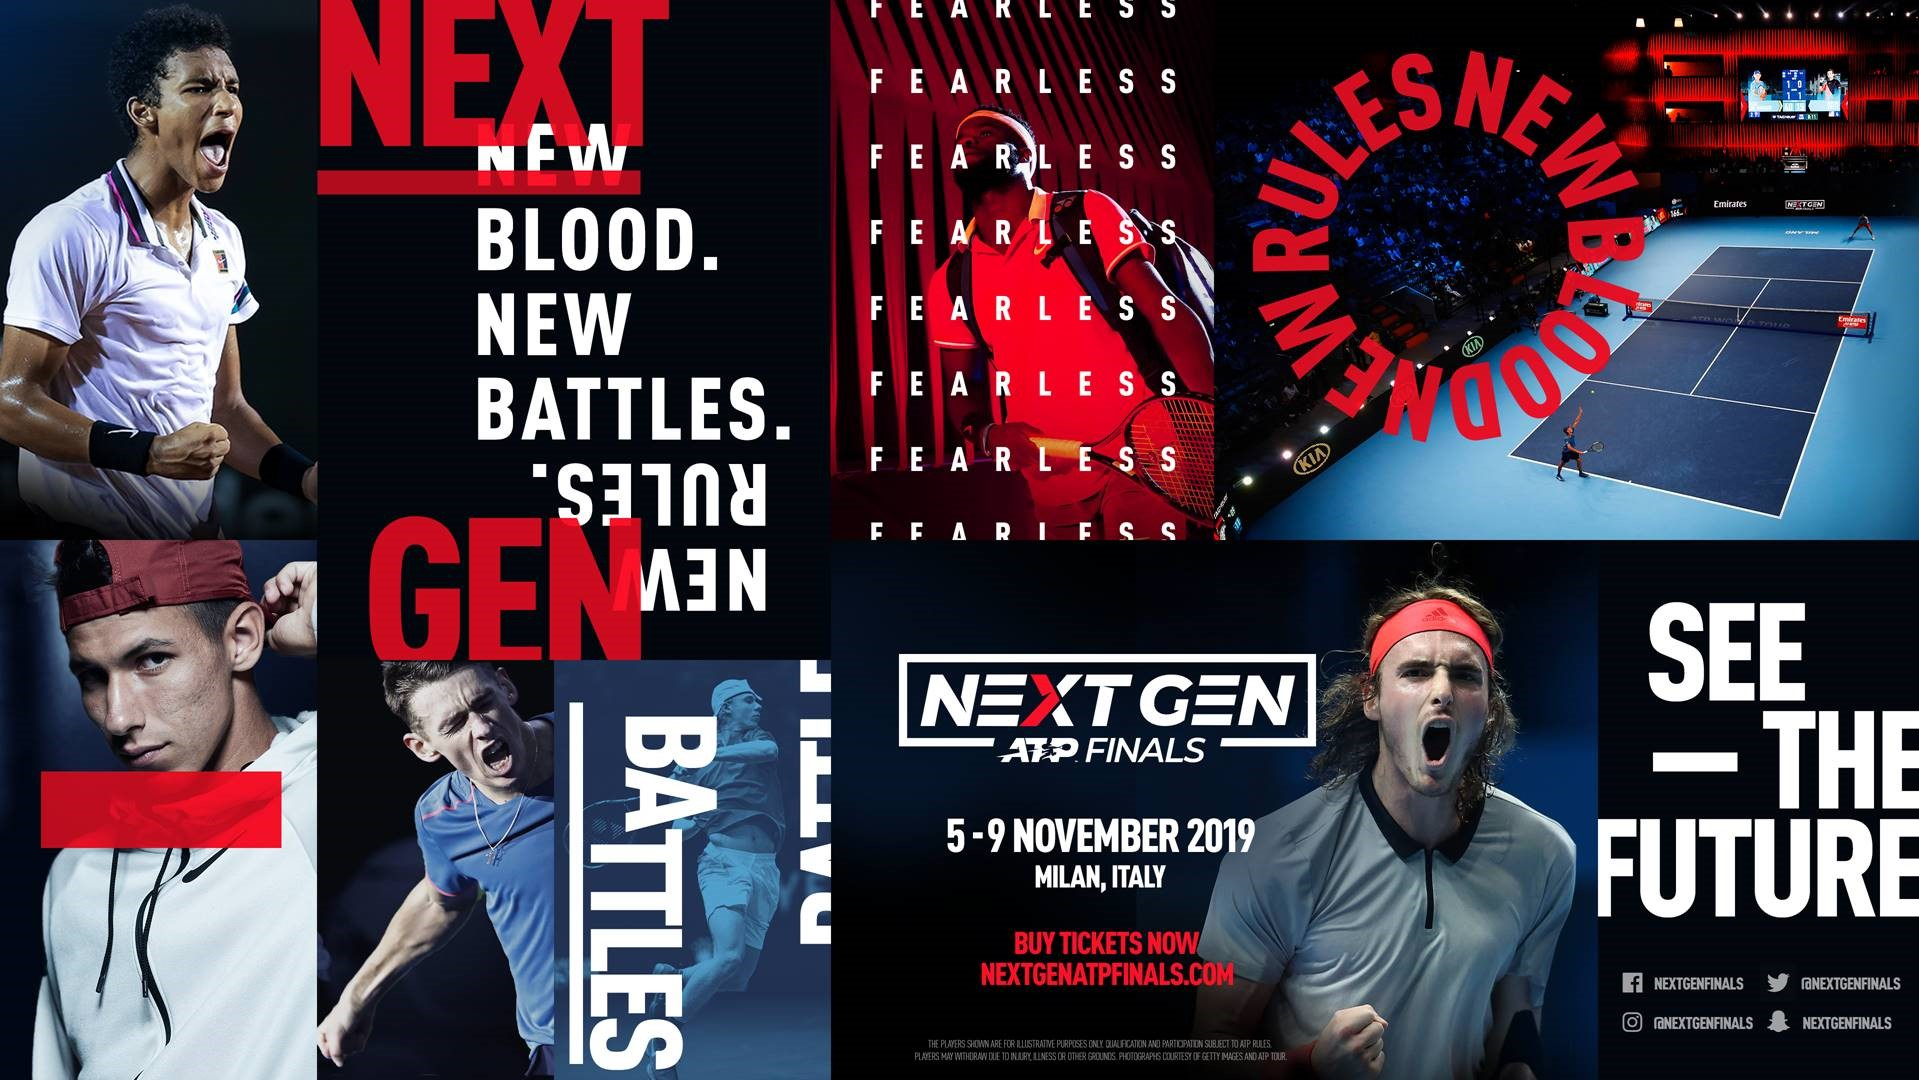 Next Gen ATP Finals, Milan